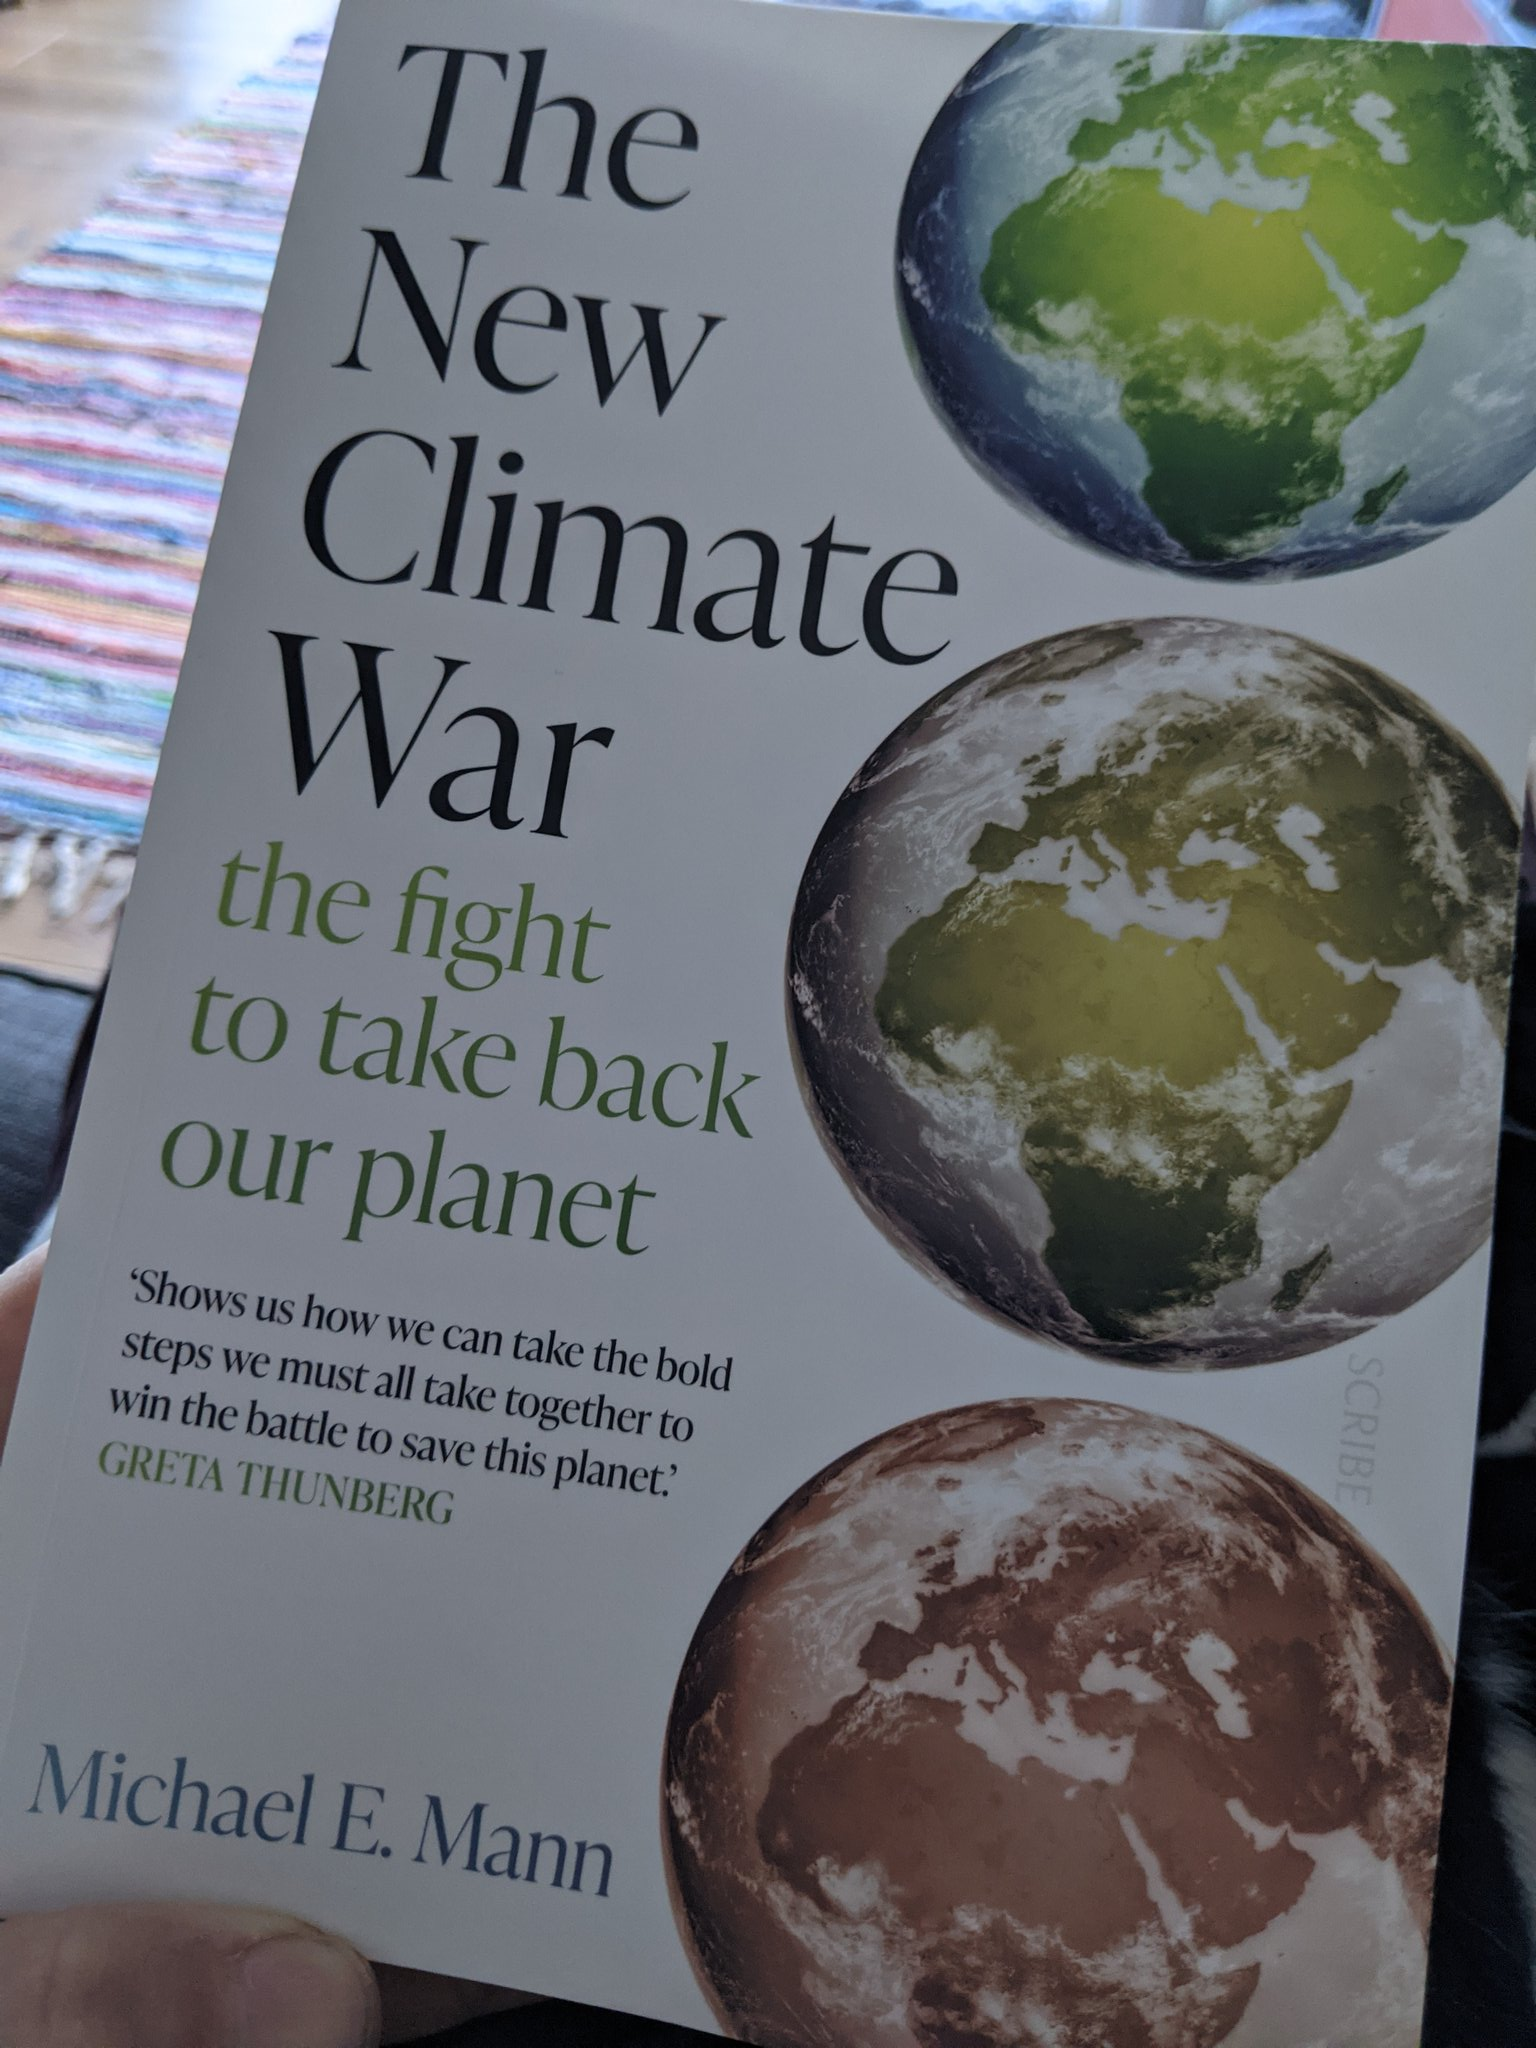 Don't panic...just work very hard to save our climate because it's not too late. That's the theme of @MichaelEMann's new book, The New Climate War, which also gives a great concise history of disinformation campaigns by fossil fuel interests. Thanks so much for writing this book. https://t.co/QCn1wbVfLl